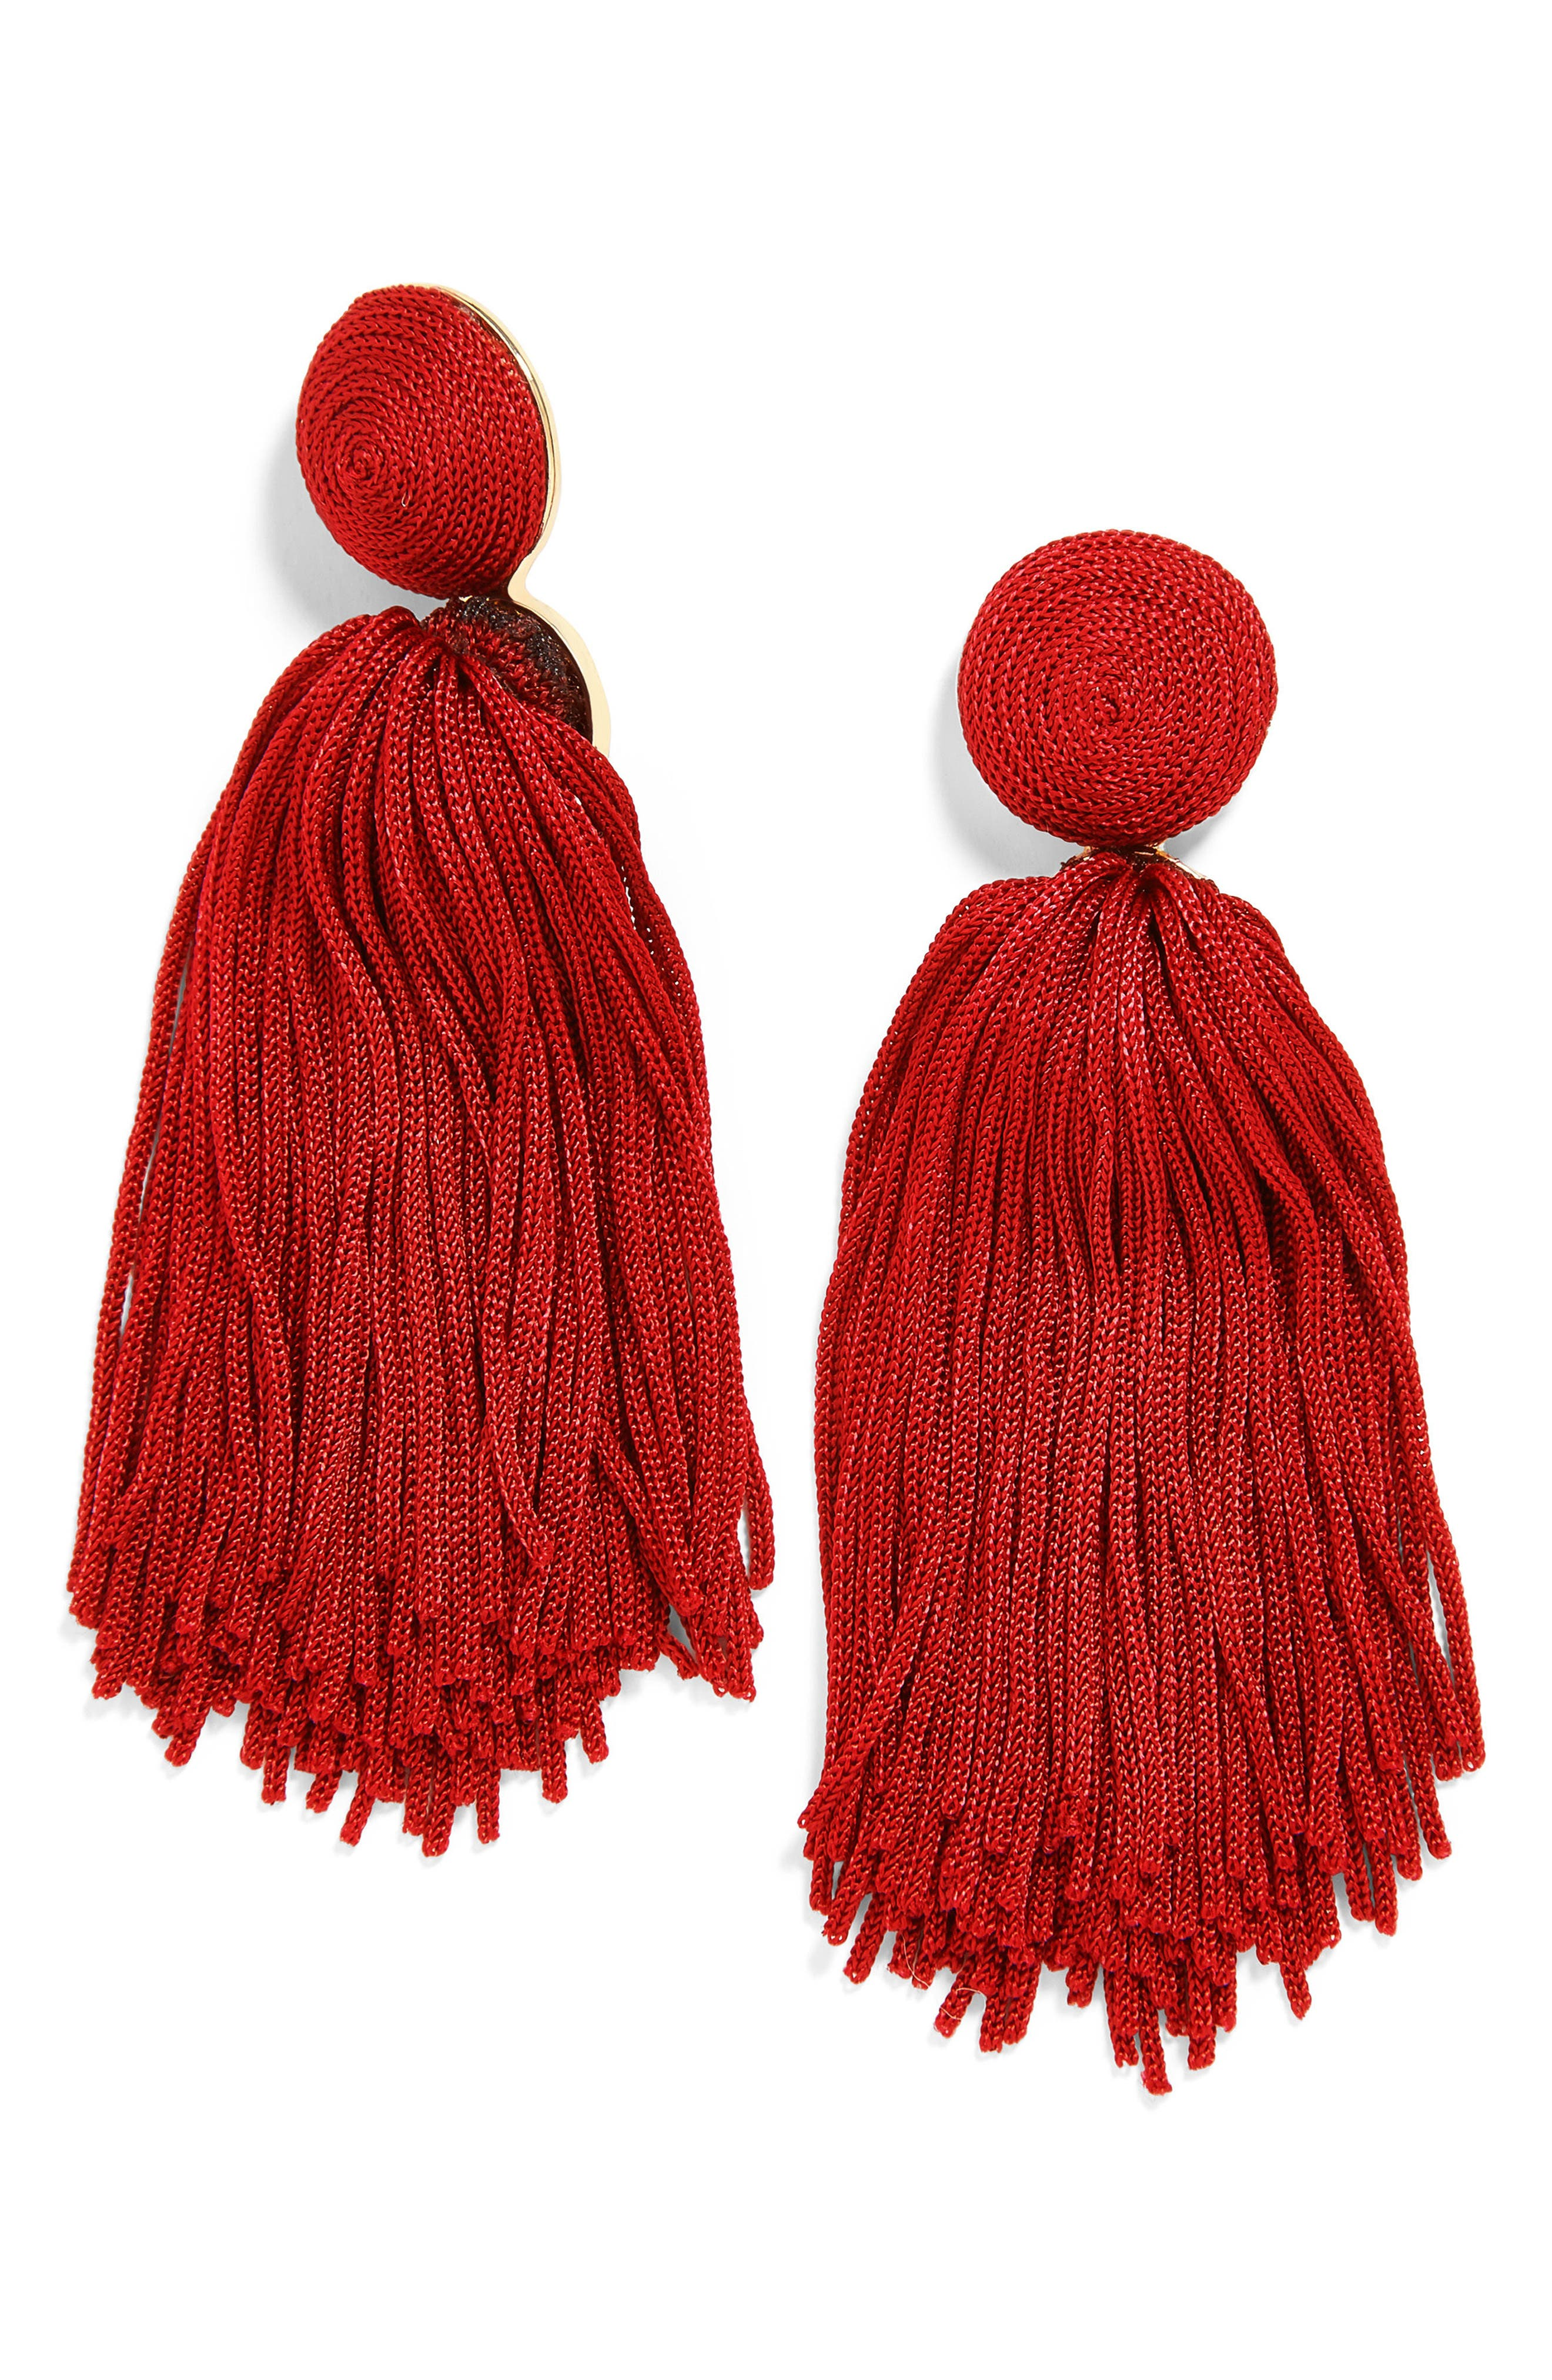 Sonatina Tassel Earrings,                             Main thumbnail 6, color,